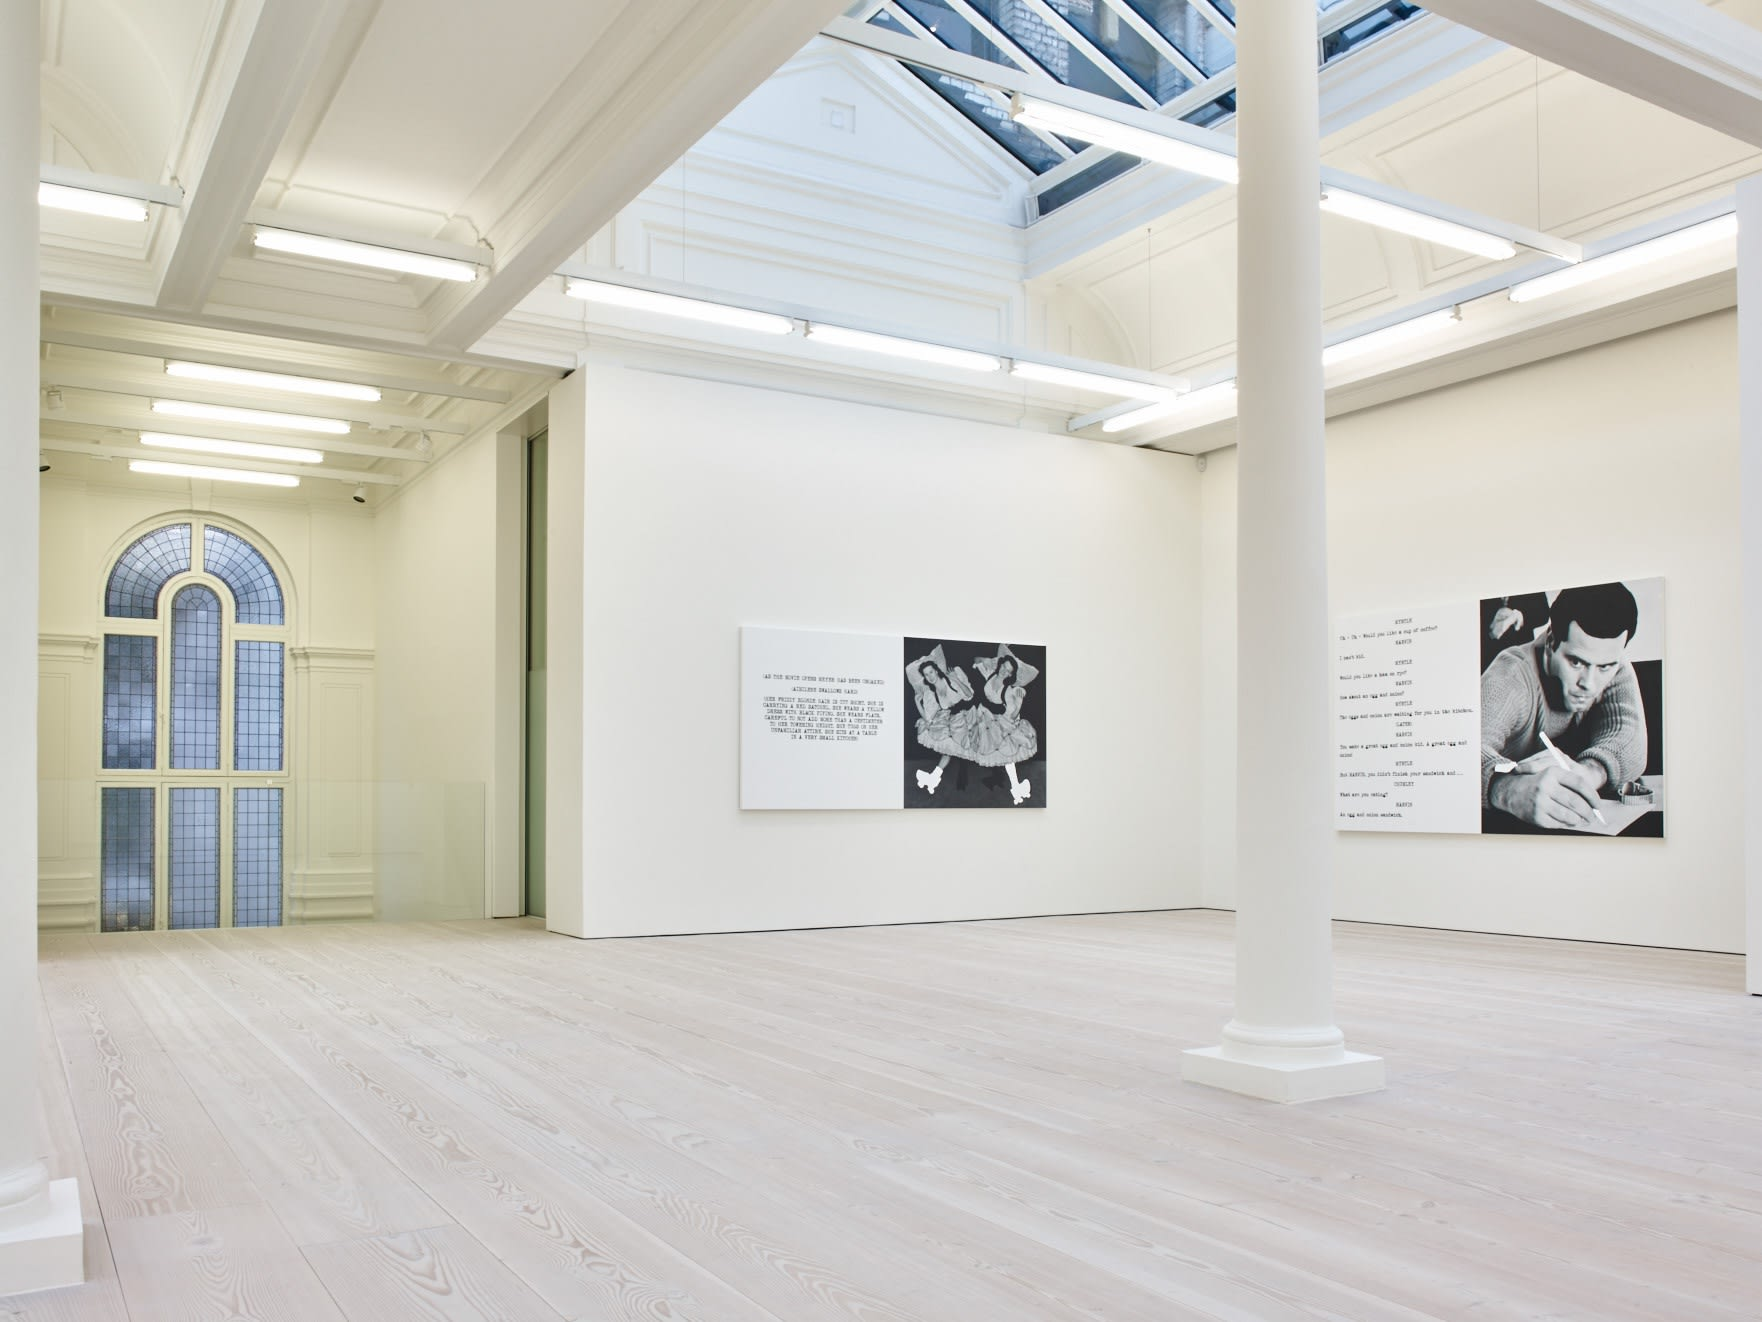 In a large white space with columns, a window, and a long skylight, 2 large paintings hang. Each are roughly half image and half text, which is in the format of a film script.